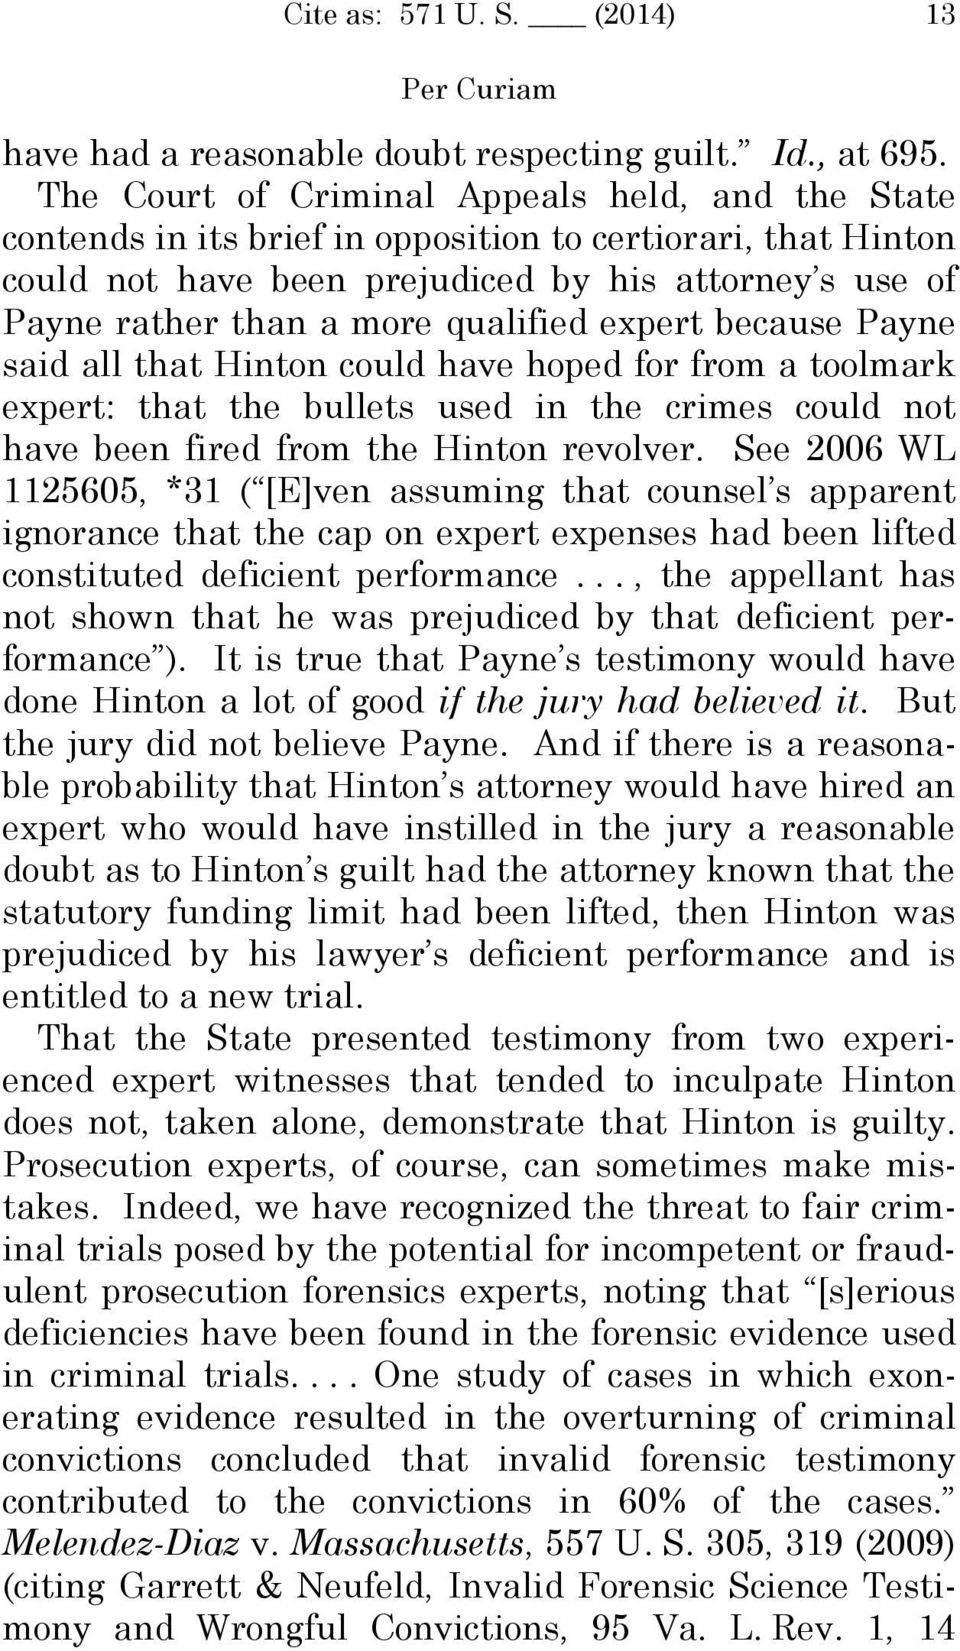 qualified expert because Payne said all that Hinton could have hoped for from a toolmark expert: that the bullets used in the crimes could not have been fired from the Hinton revolver.